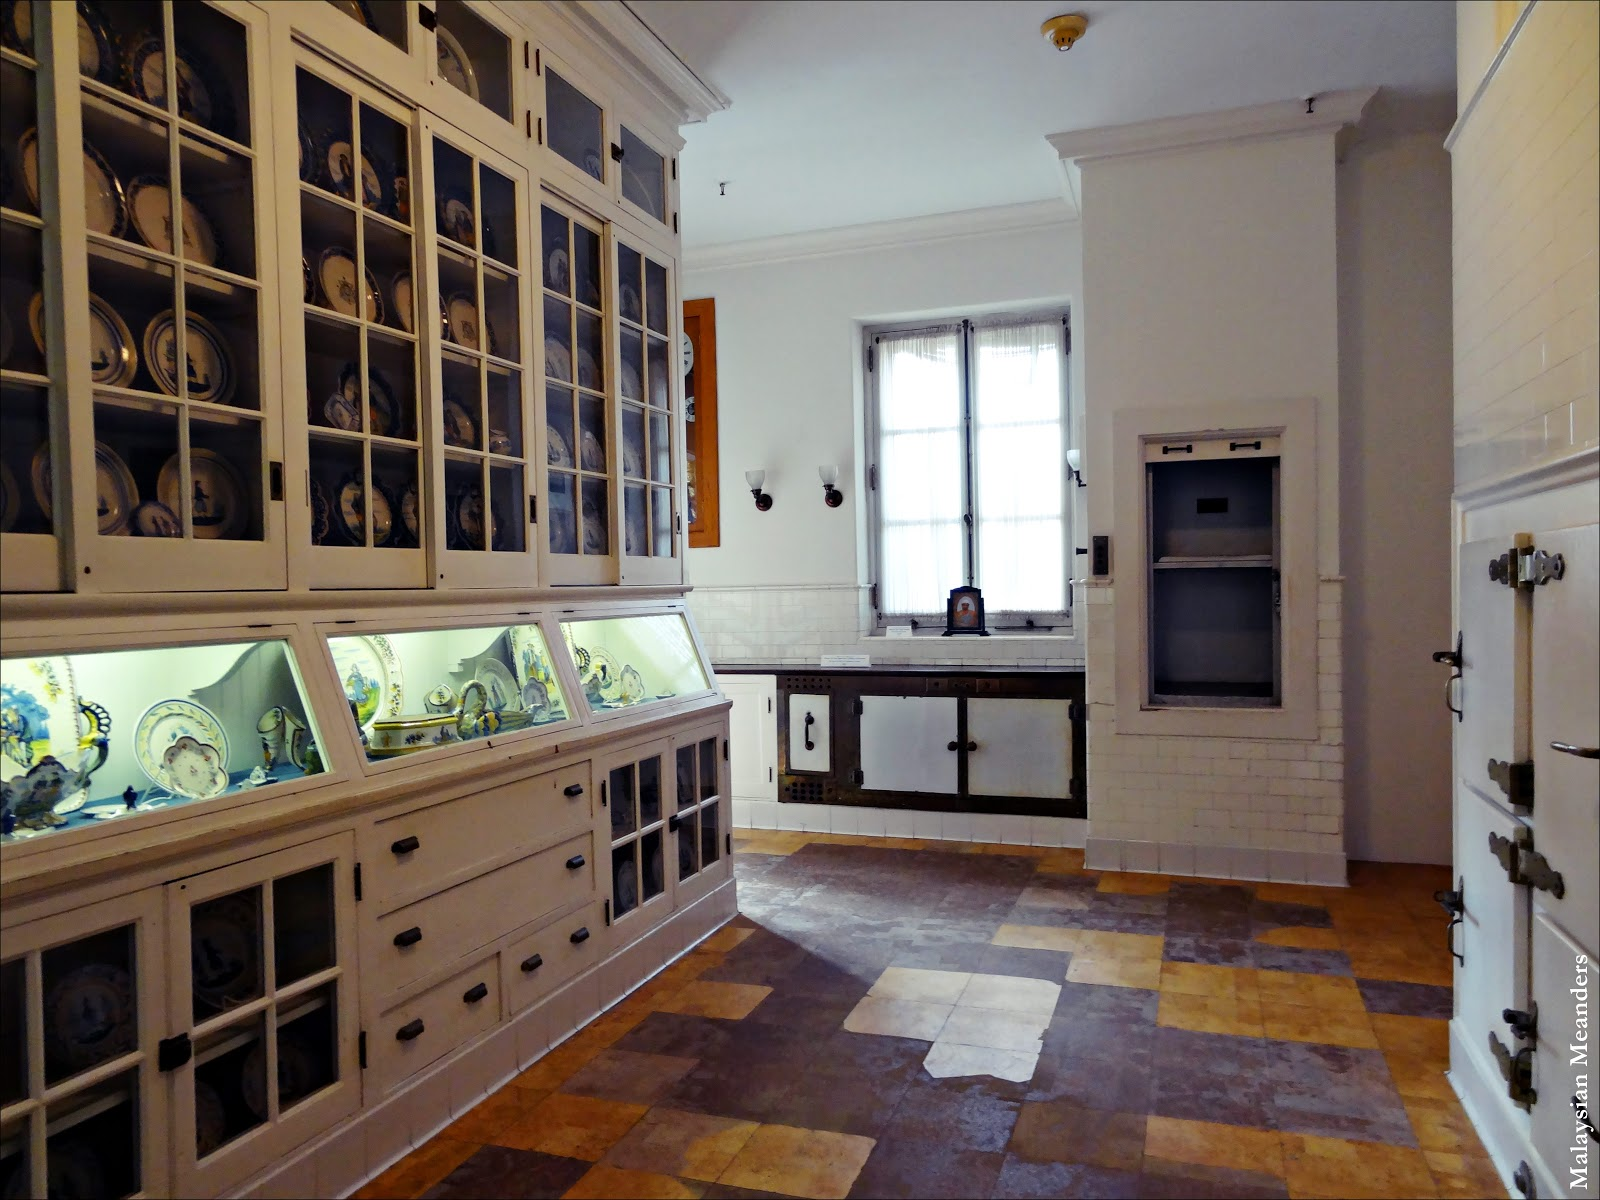 Inspirational Downstairs Serving Pantry plete with refrigerators and a dumbwaiter